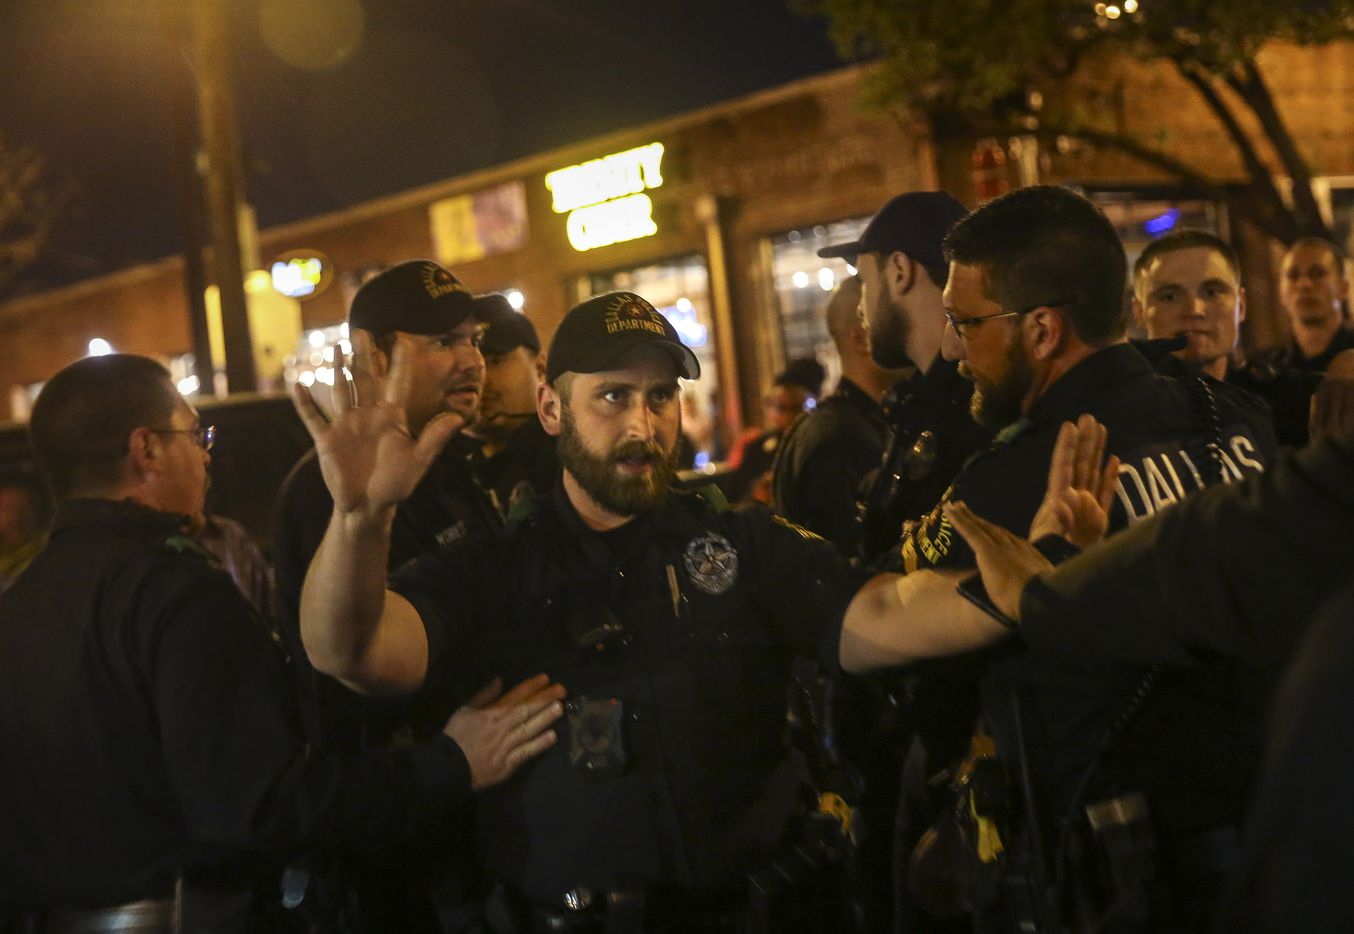 Police break up a dispute during a protest Saturday, March 23, 2019 in Dallas' Deep Ellum neighborhood.